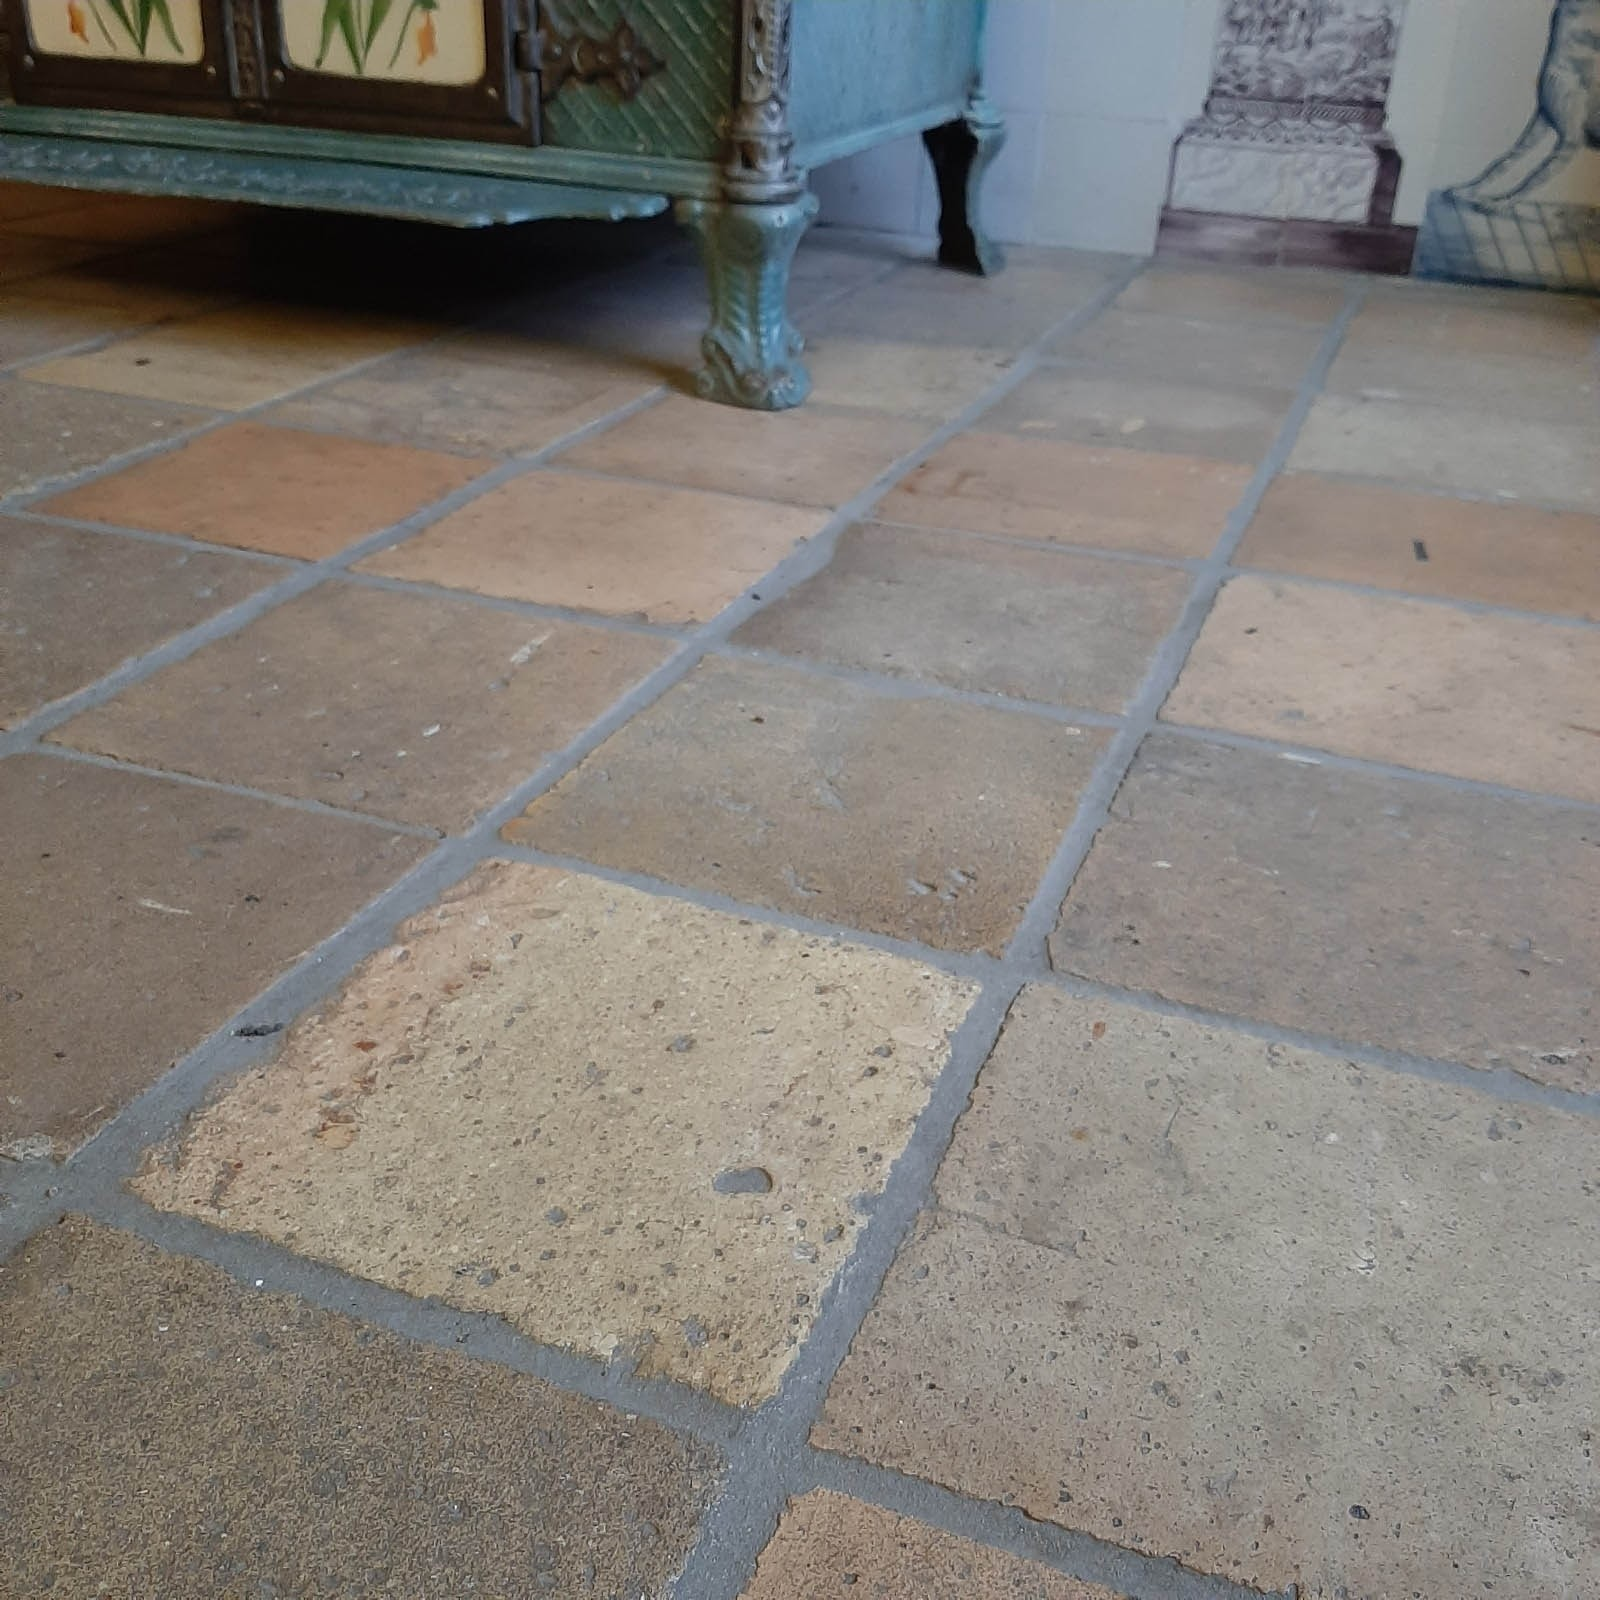 Antique French terracotta tiles in yellow and peach tones